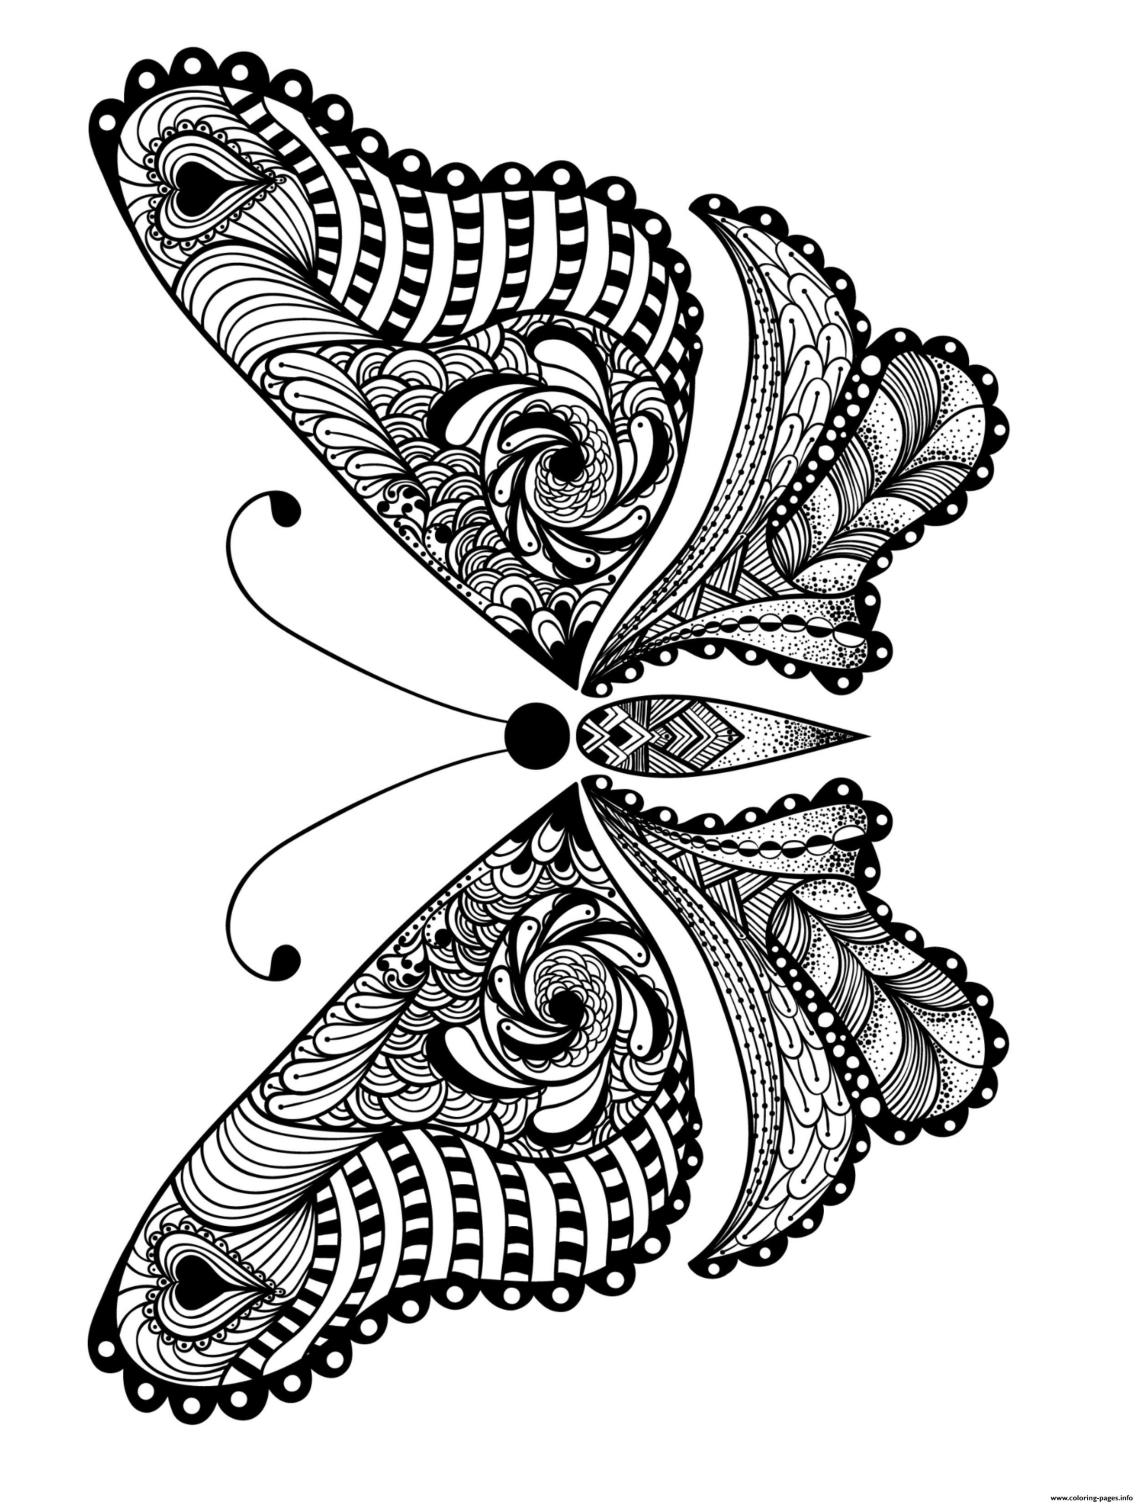 Advanced Insect Animal Adult Coloring Pages Printable | free printable colouring pages for adults animals